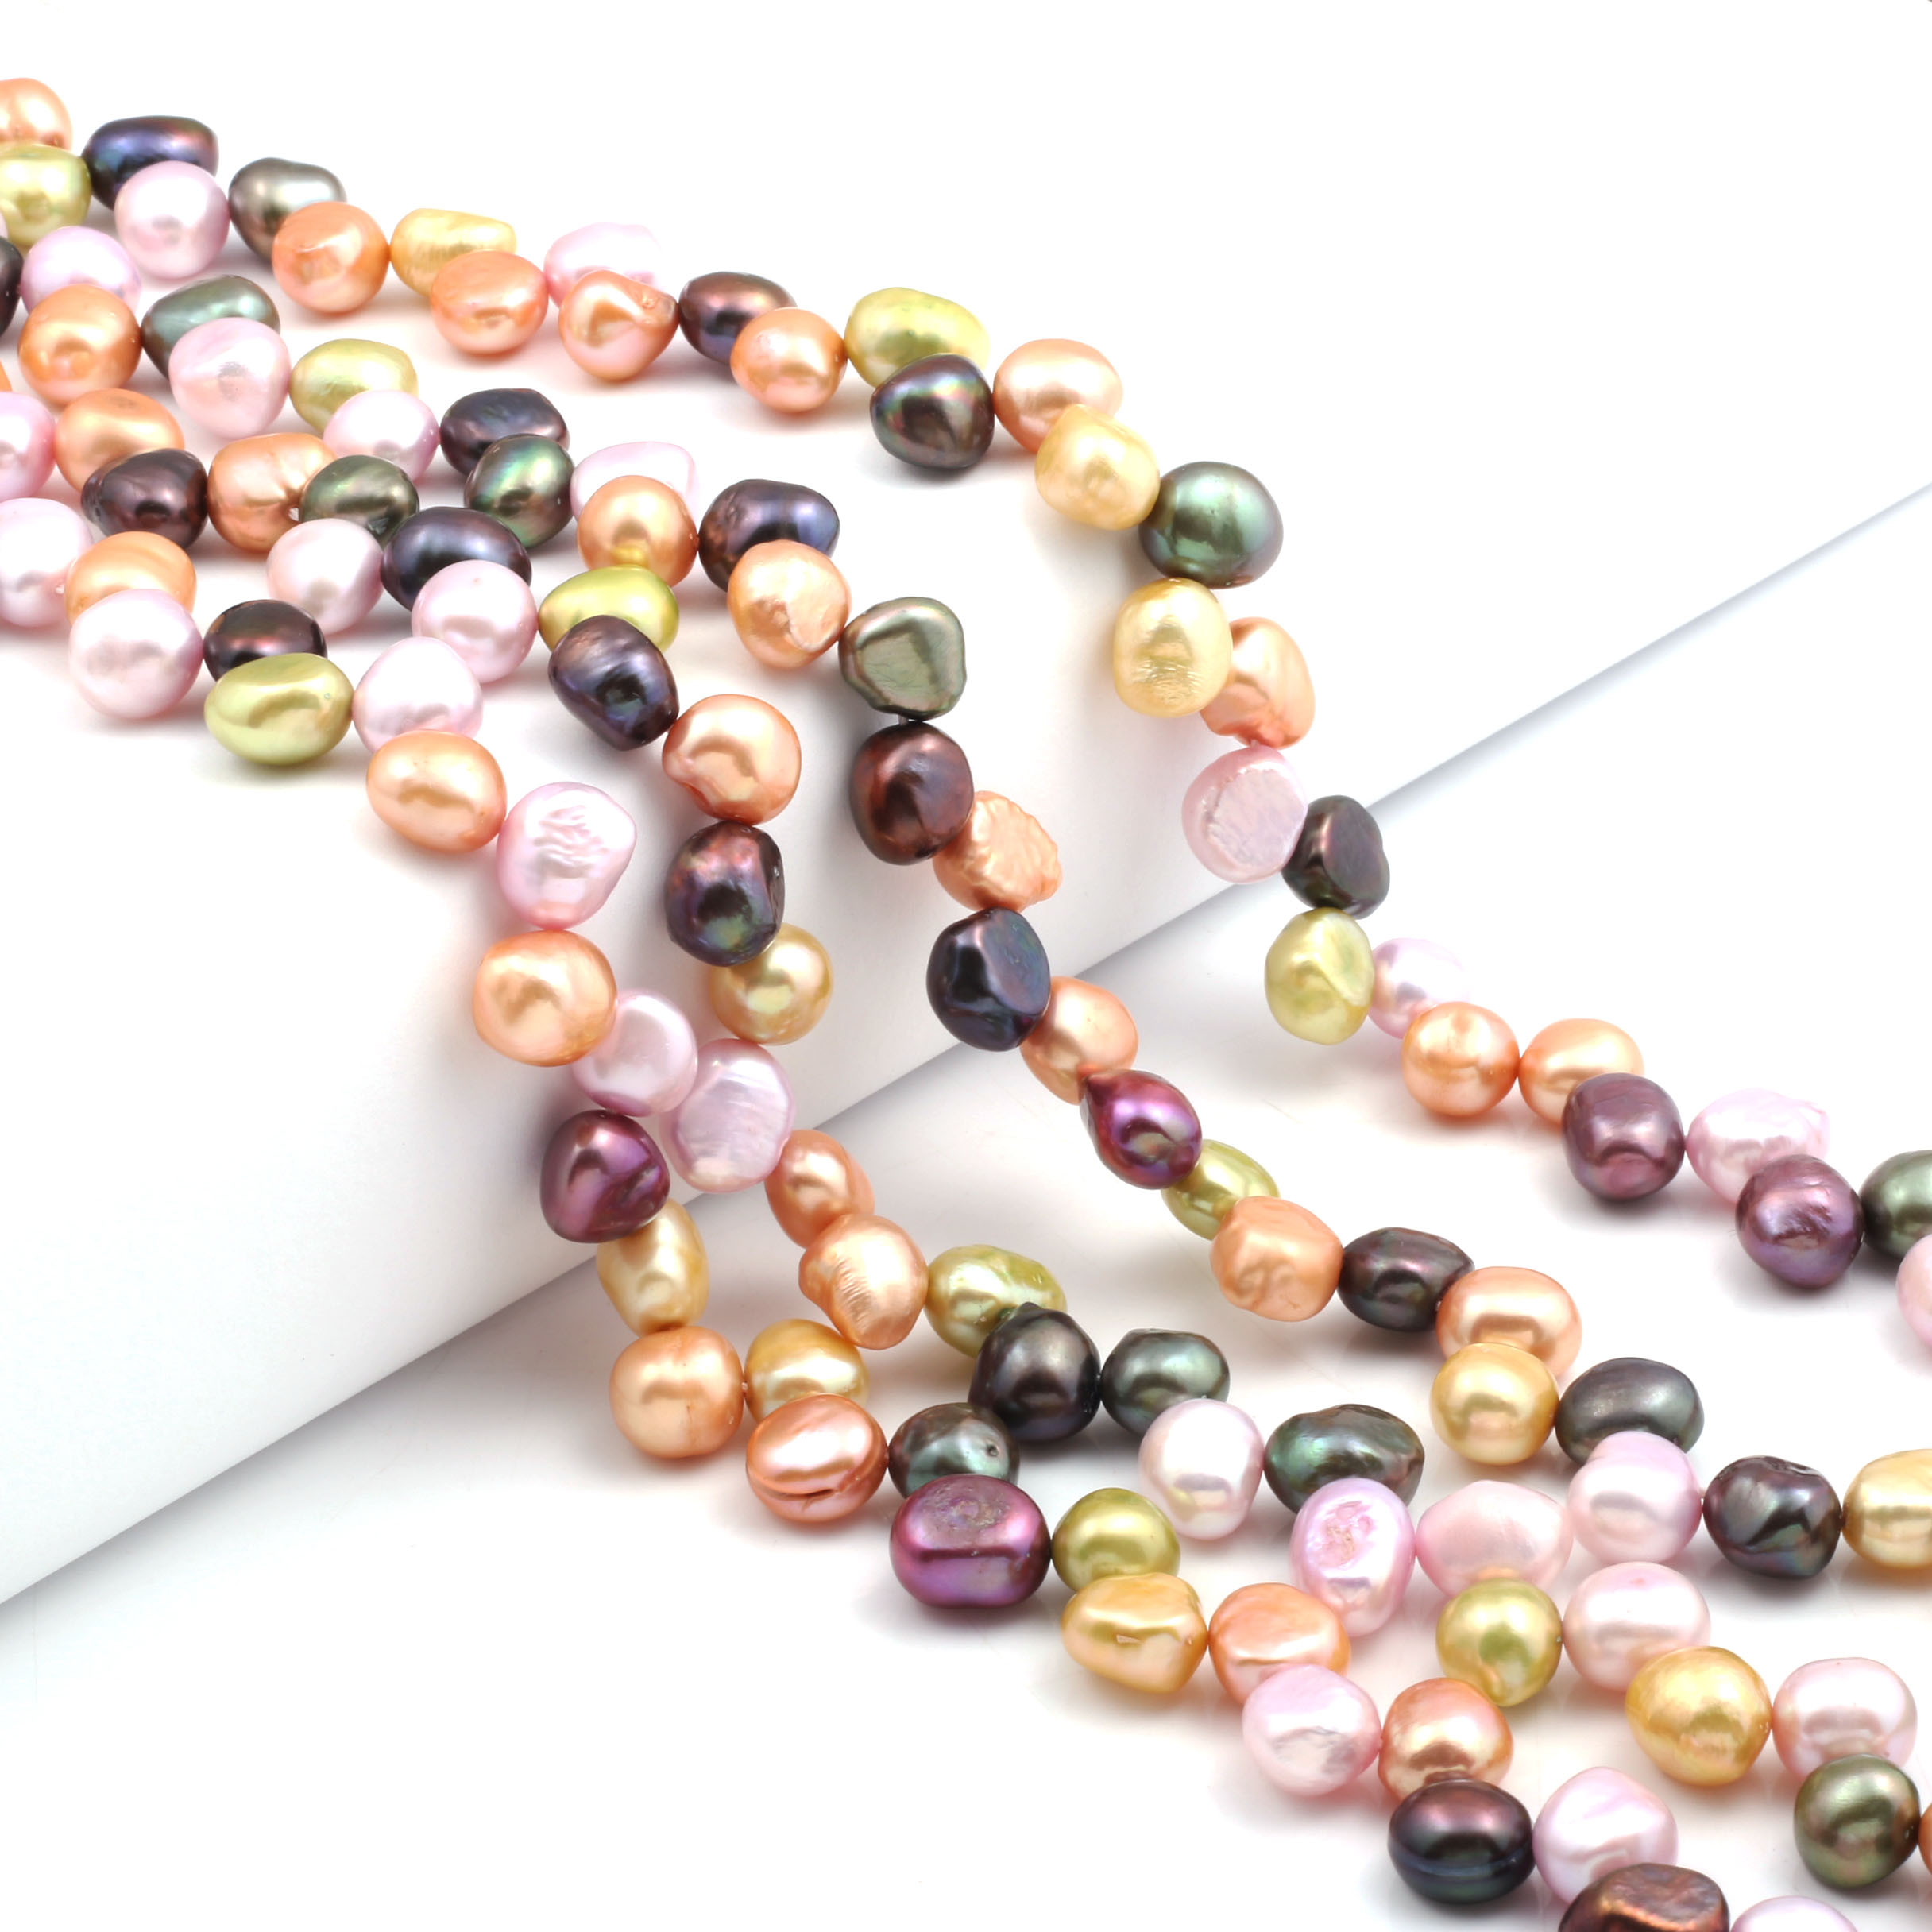 Natural Freshwater Pearl Beads High Quality 36cm Color mixing irregular Punch Loose Beads DIY Necklace Bracelet Jewelry Making